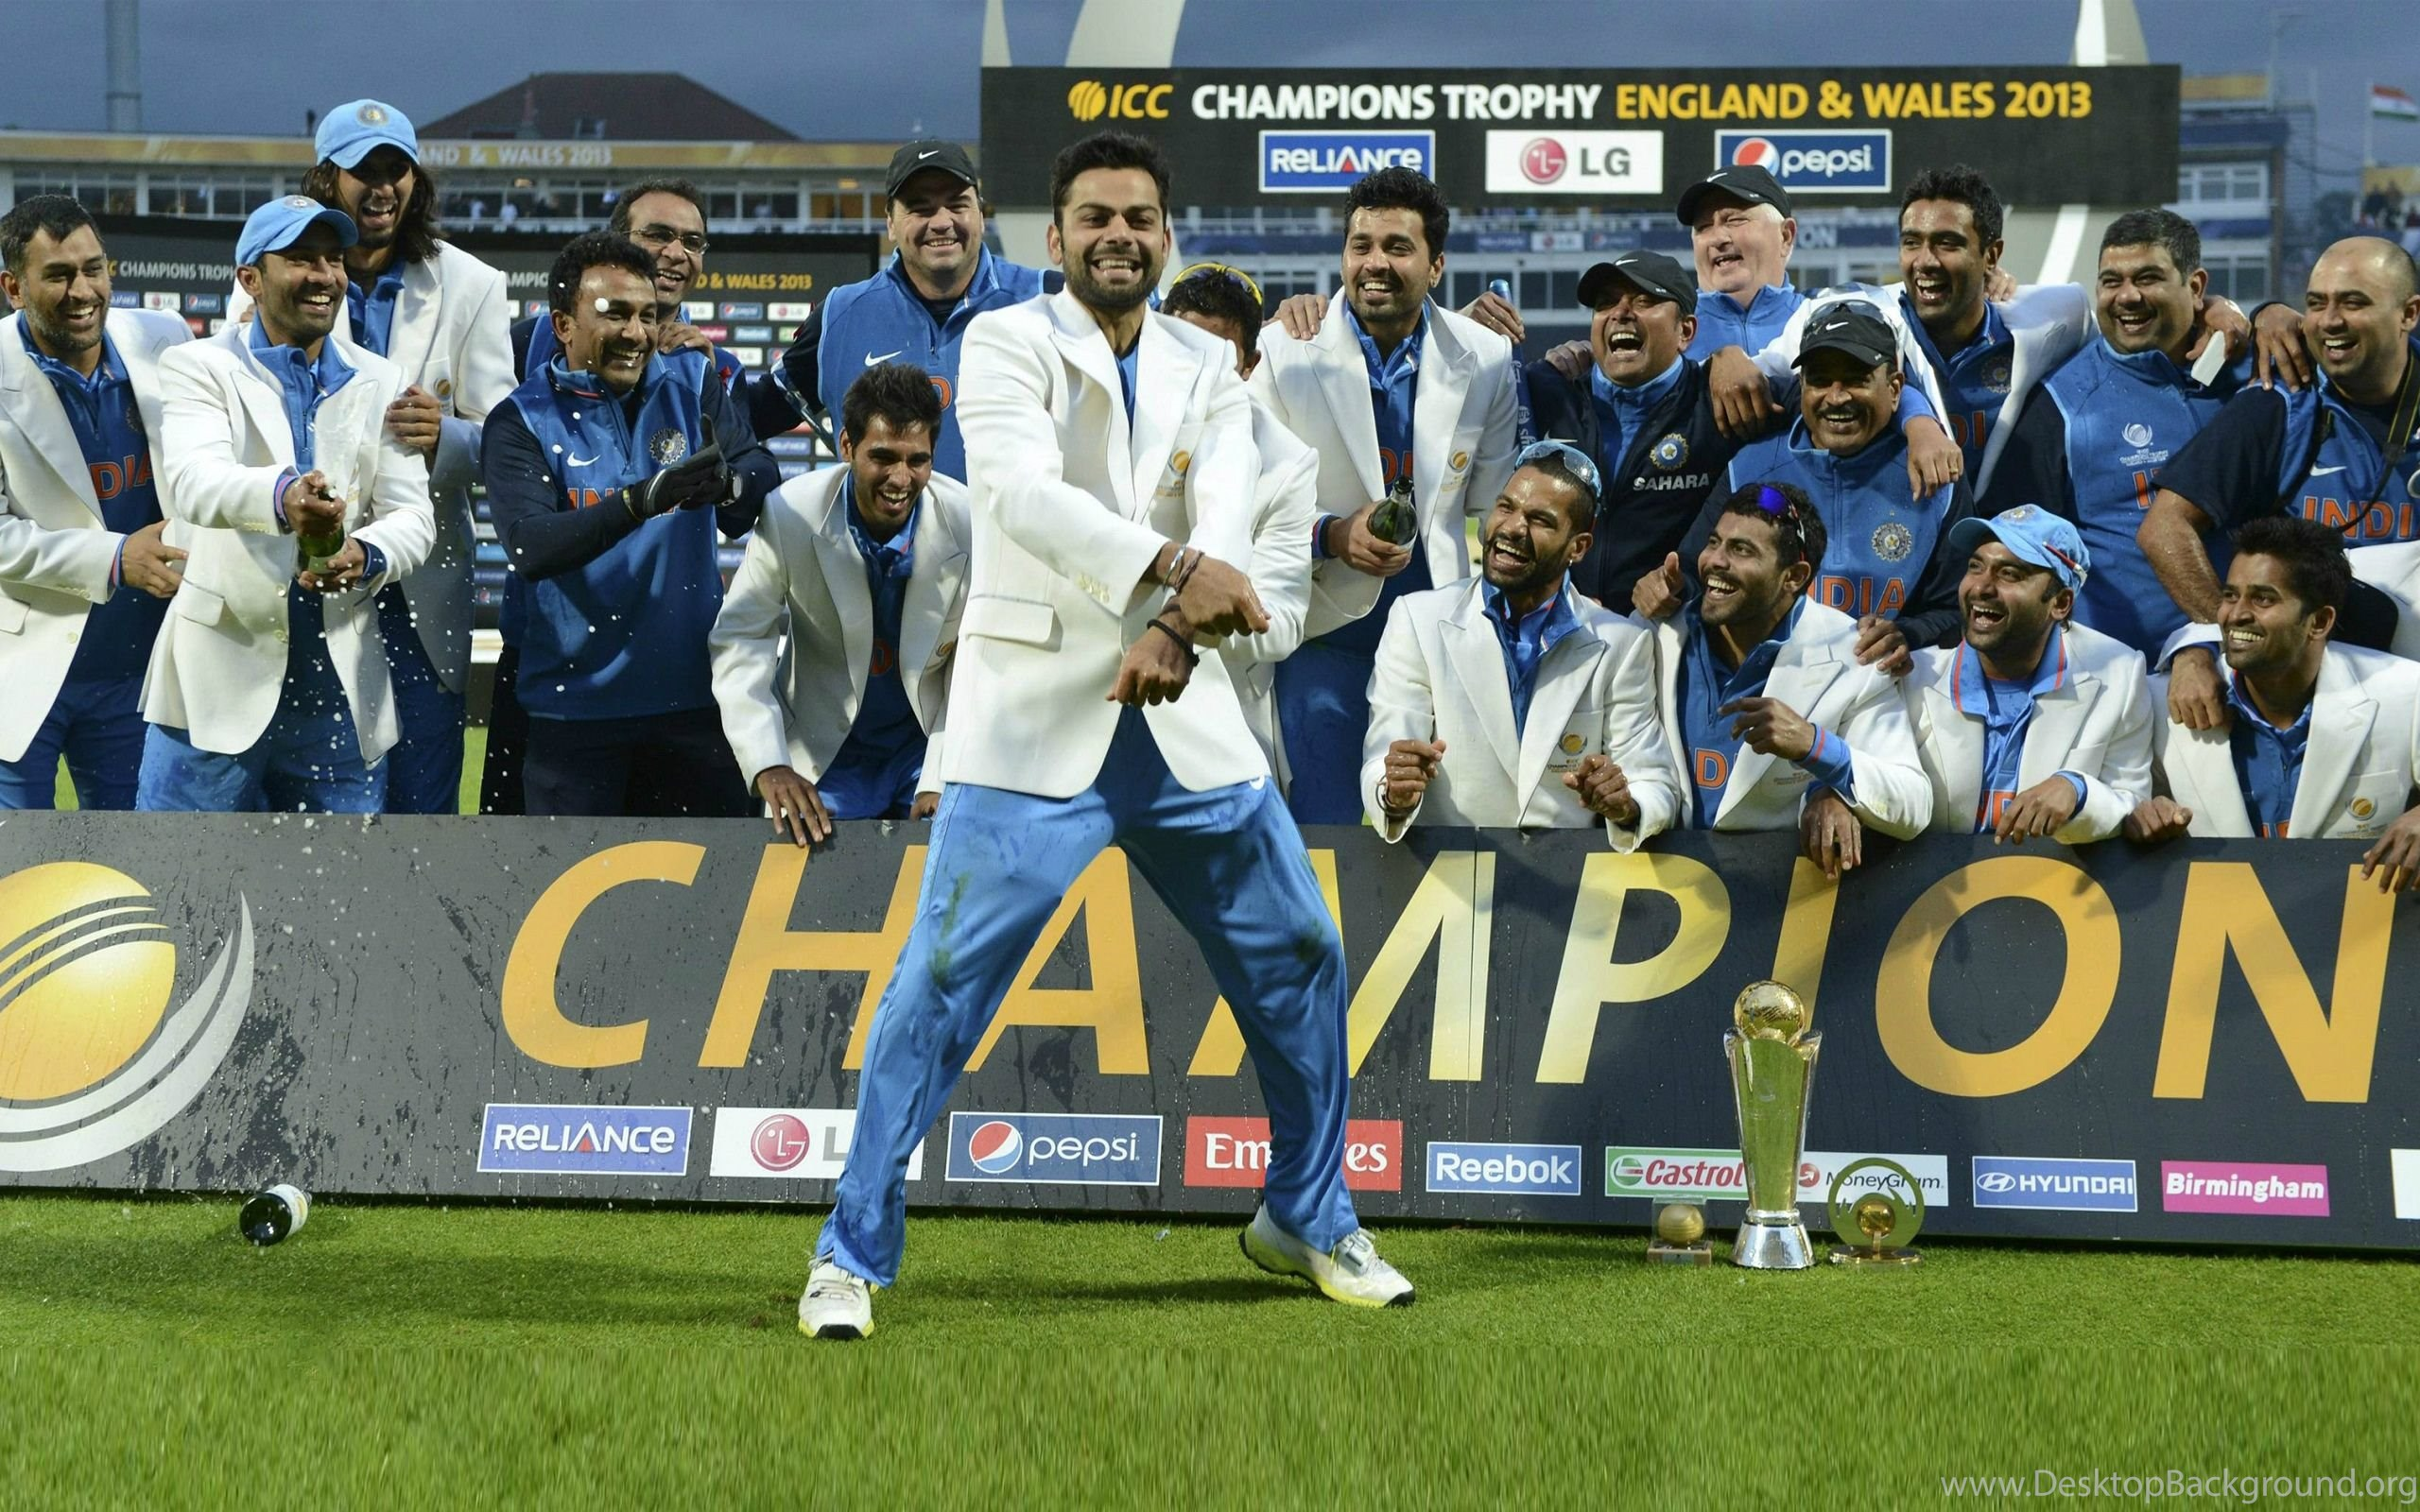 Indian Cricket Team Champion Celebrate Hd Wallpapers Desktop Background